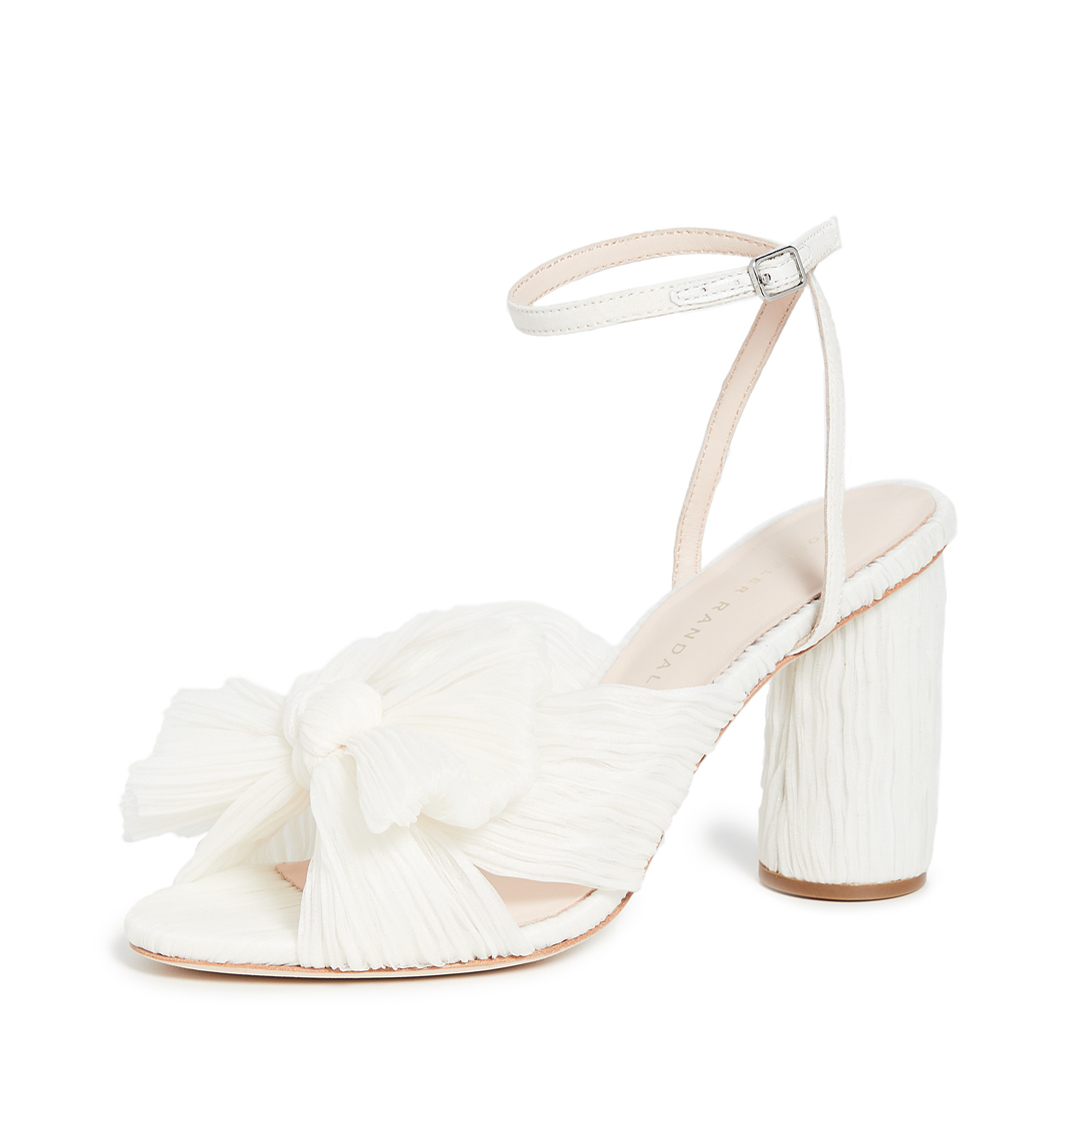 6 Comfortable Wedding Shoes For Brides Real Simple